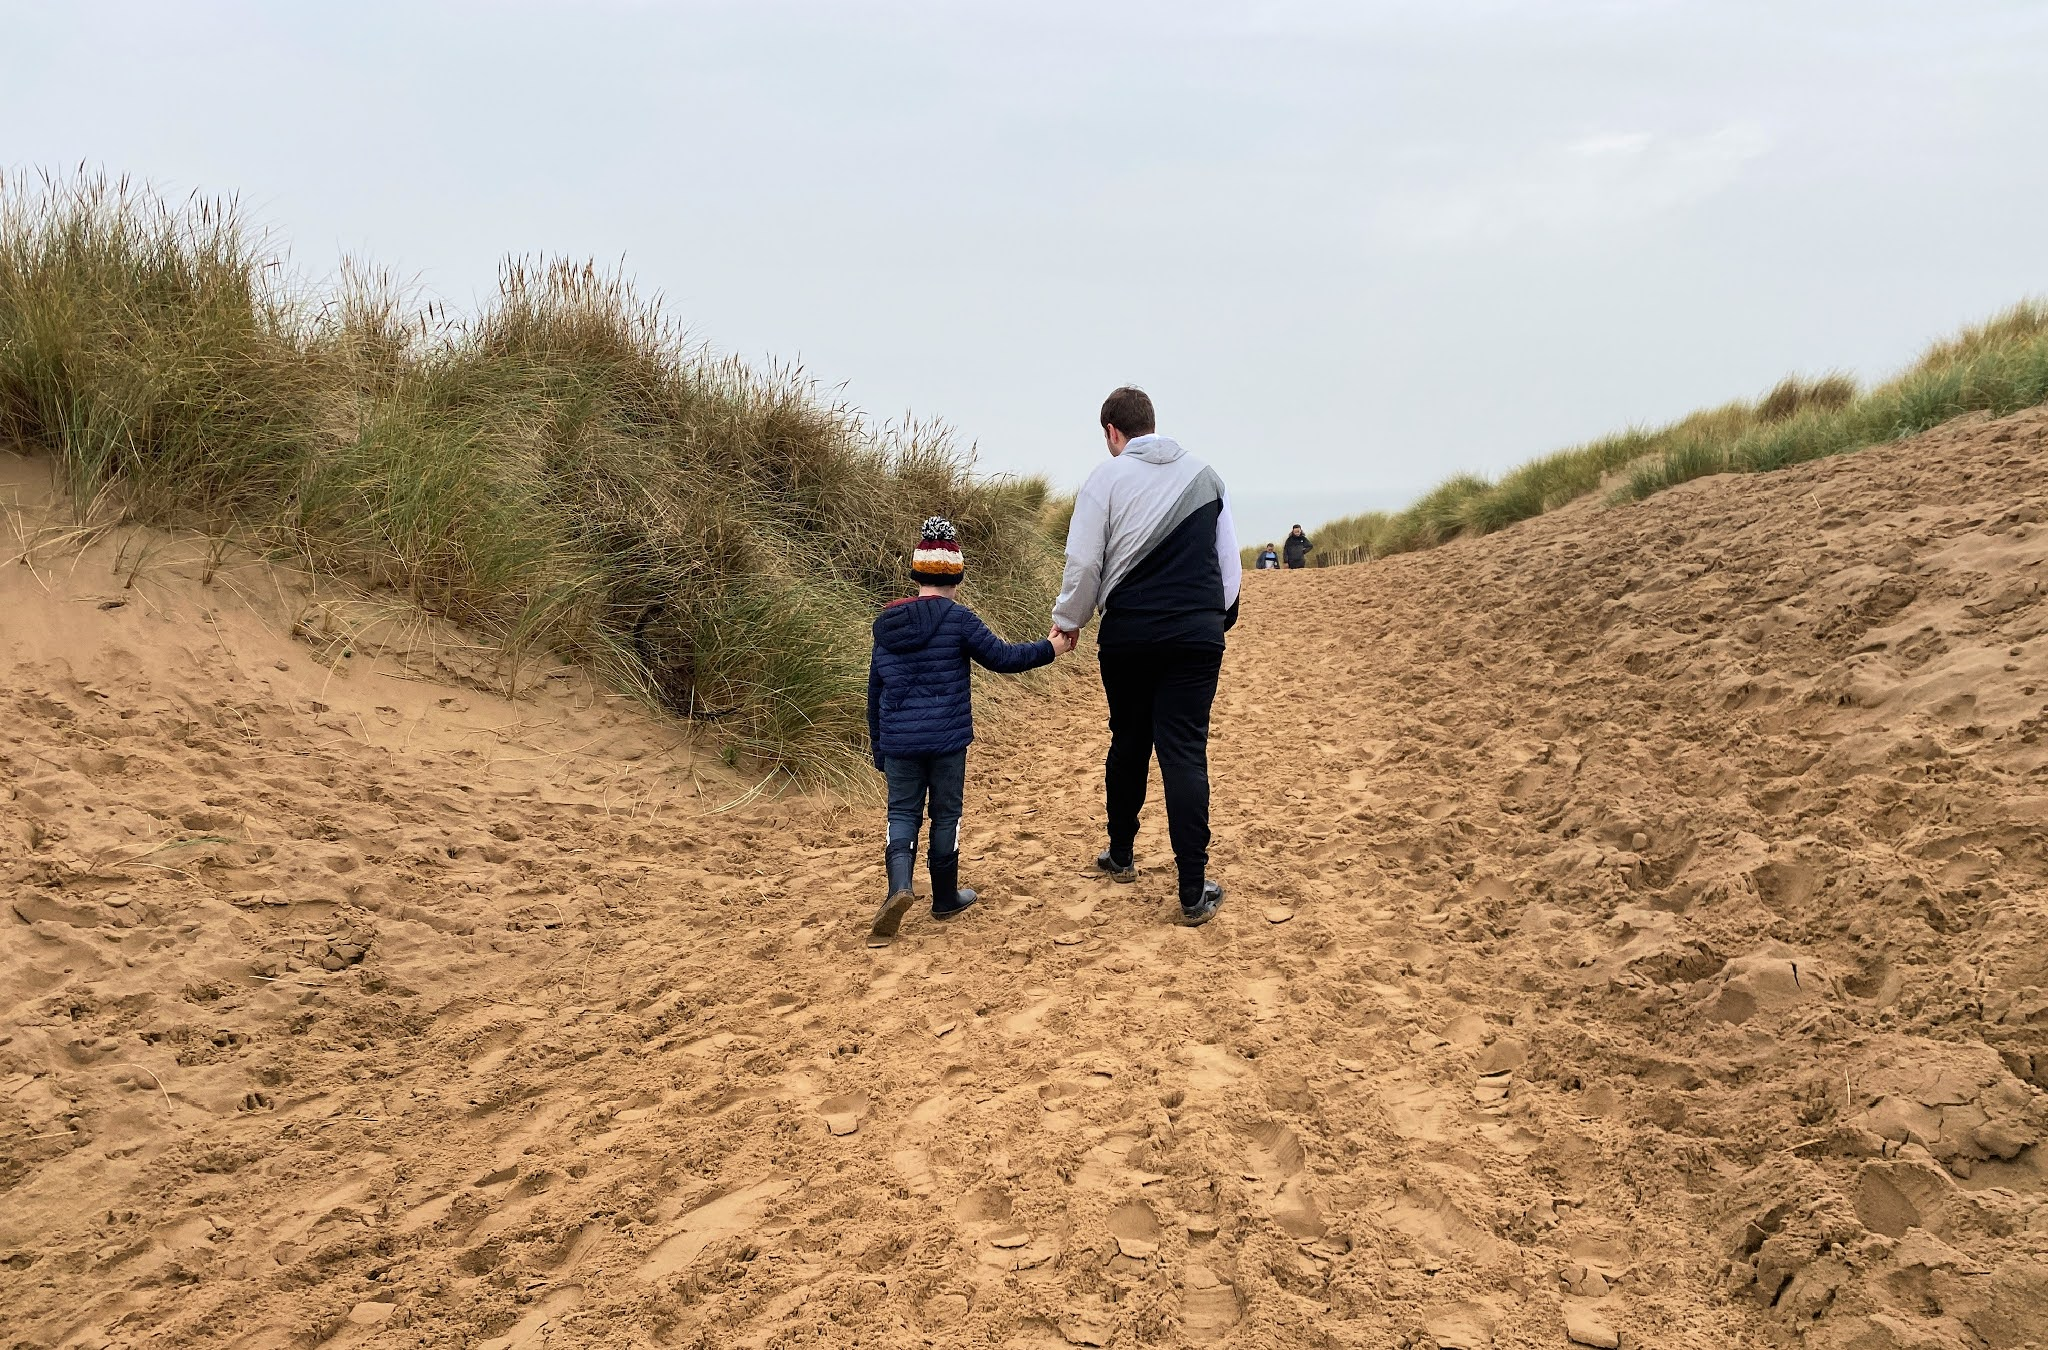 two boys walking over sand dunes